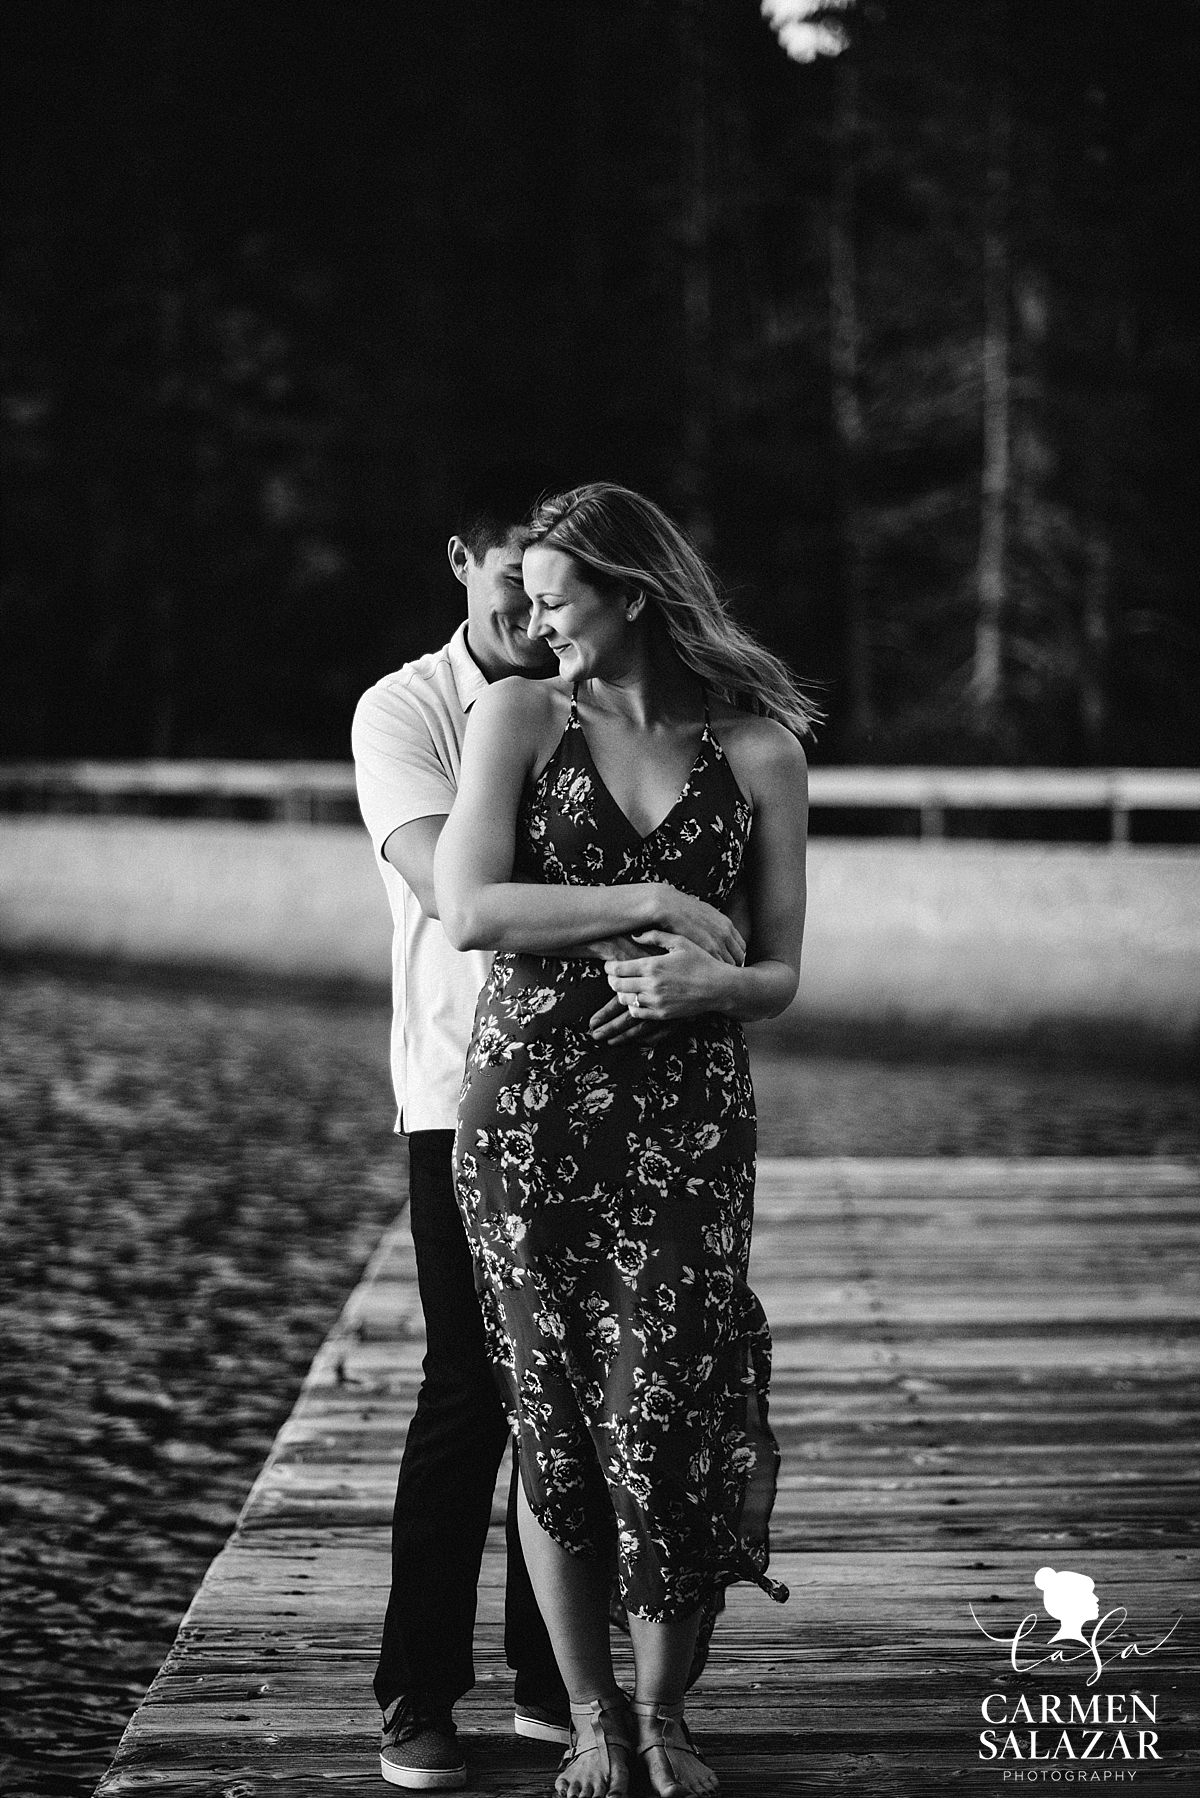 Sweetheart engagement photography adventures - Carmen Salazar